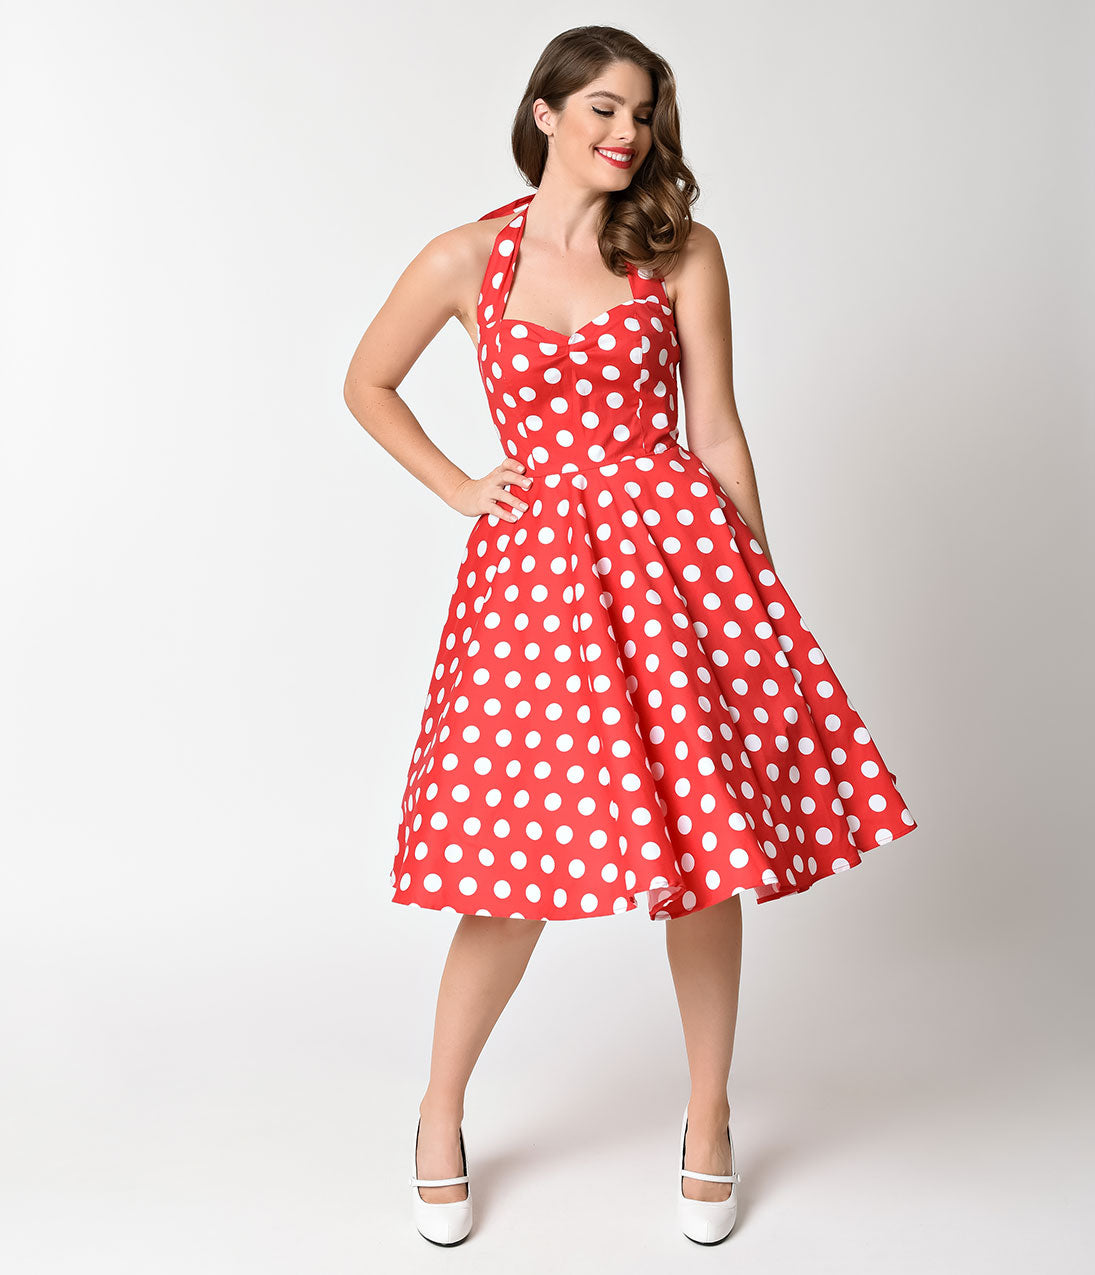 Vintage Polka Dot Dresses – 50s Spotty and Ditsy Prints Hell Bunny 1950s Cherry Red  White Dot Halter Mariam Swing Dress $54.00 AT vintagedancer.com